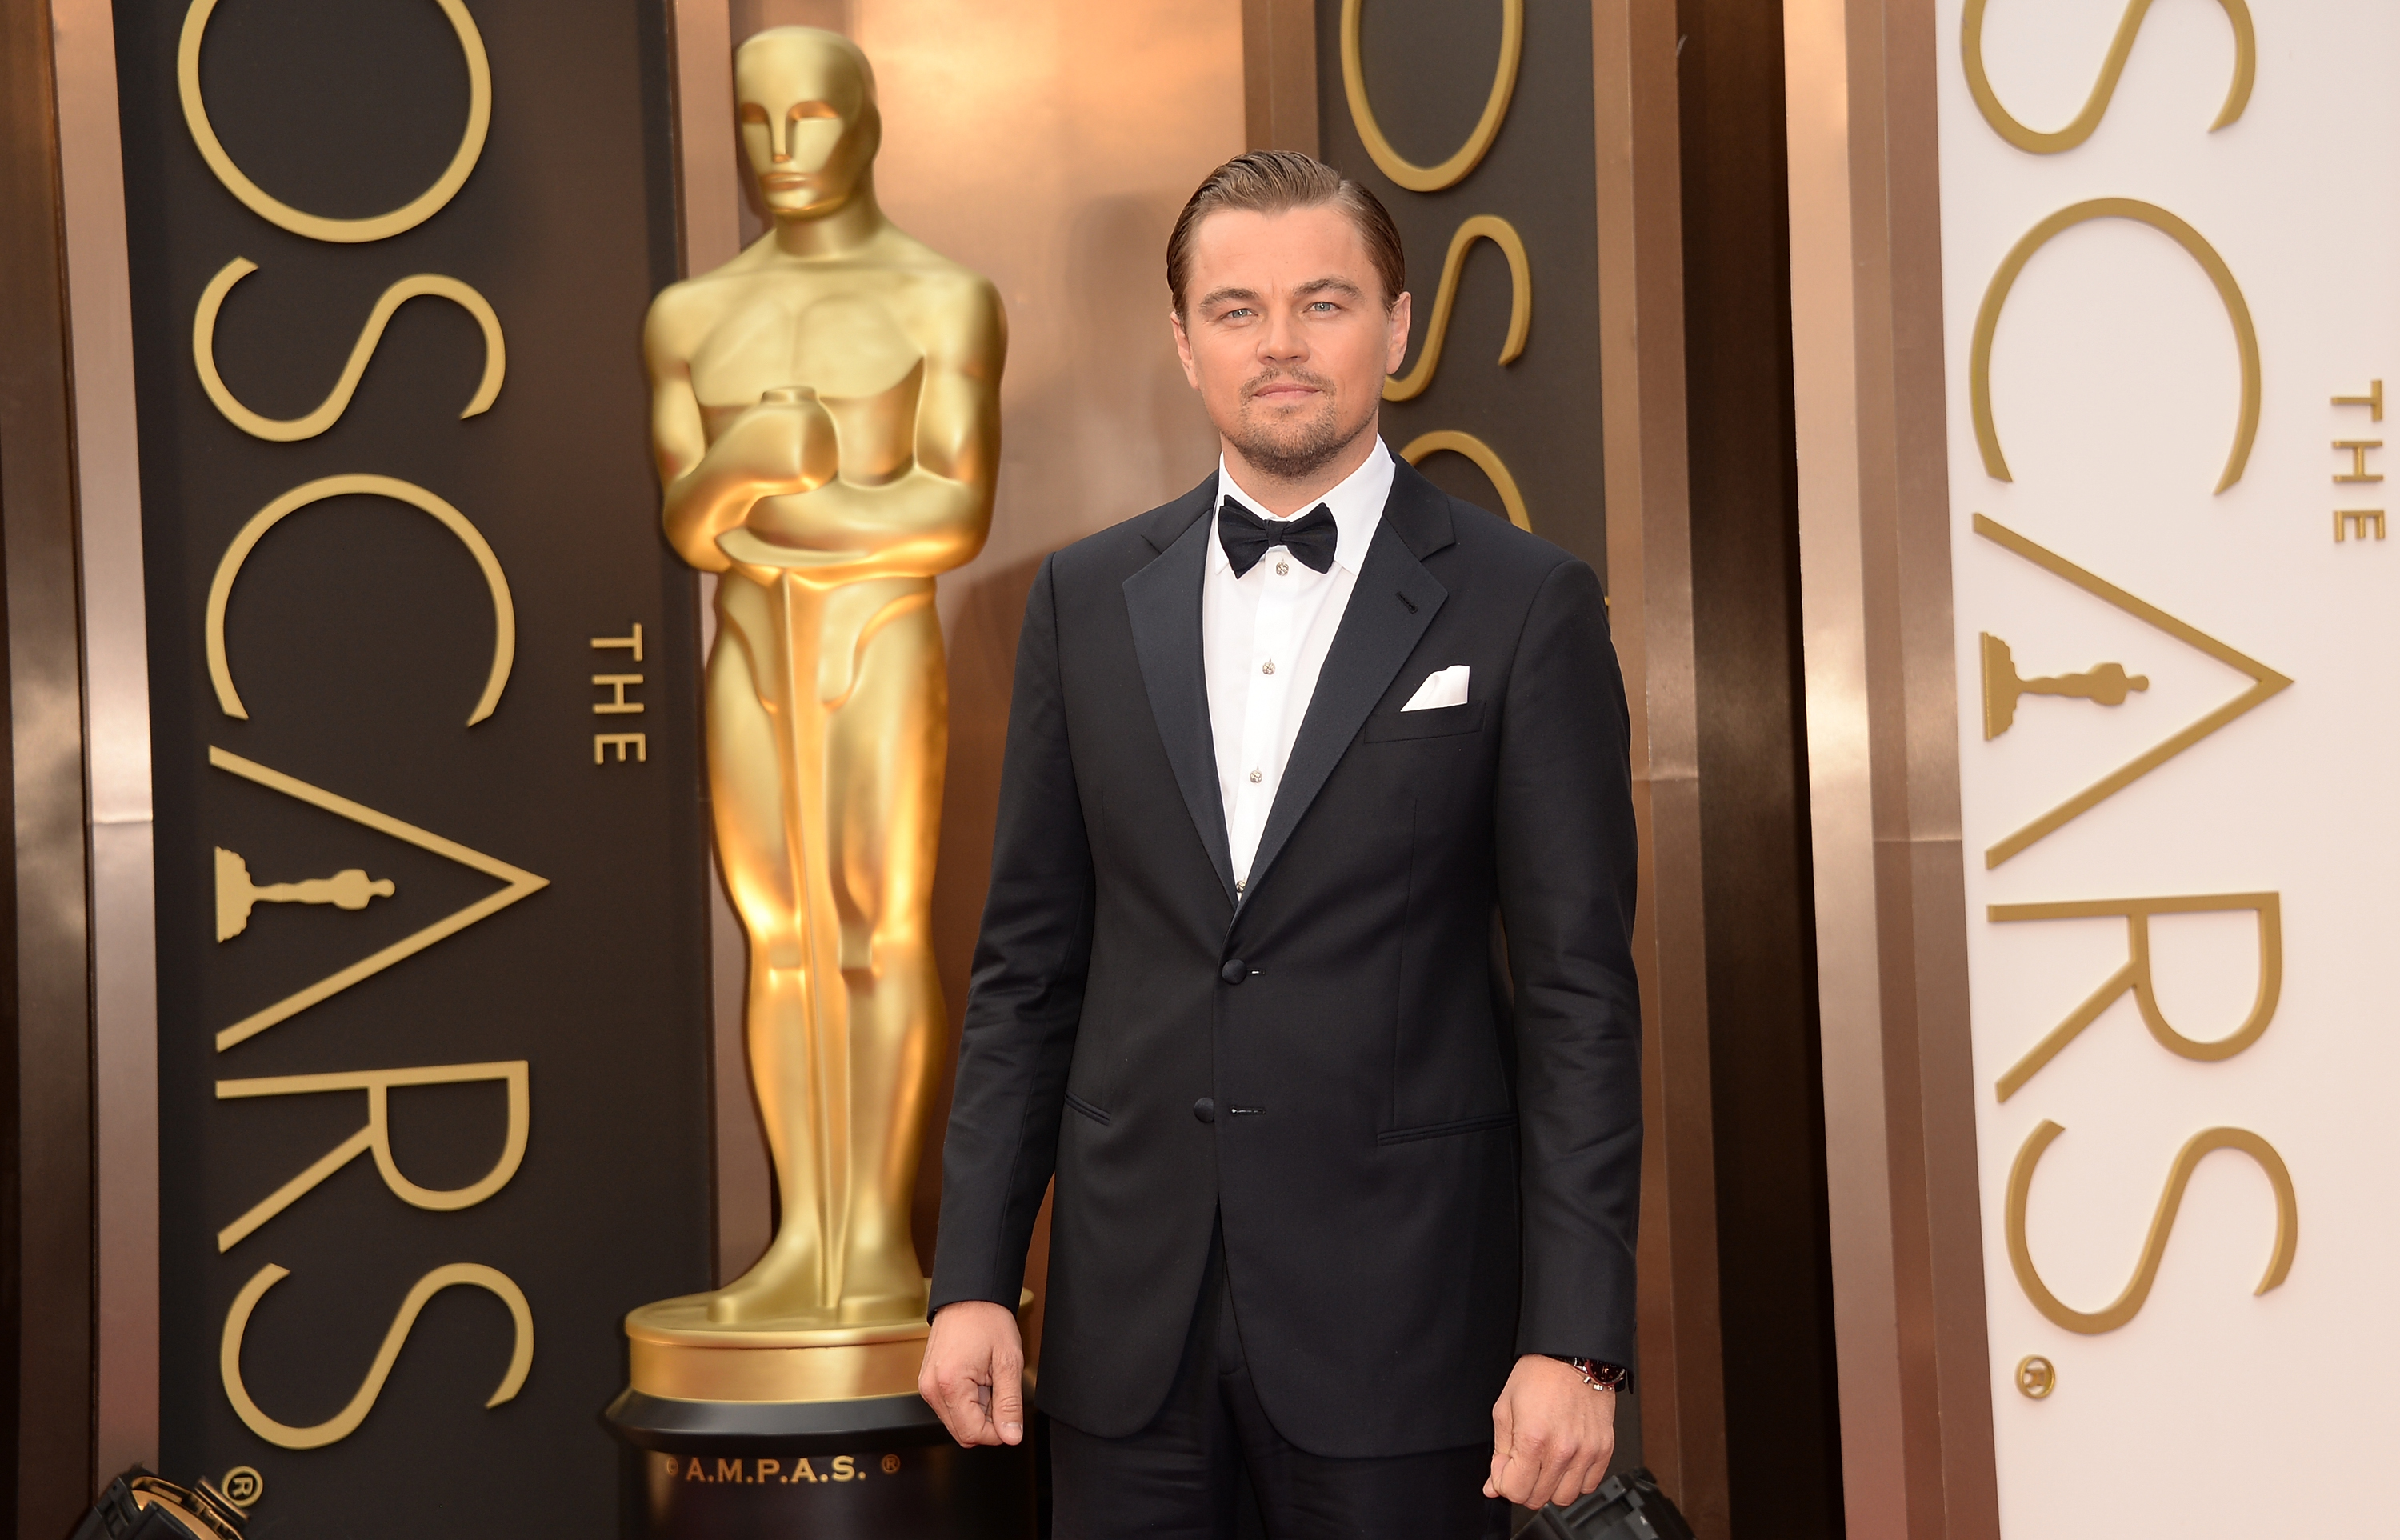 HOLLYWOOD, CA - MARCH 02:  Actor Leonardo DiCaprio attends the Oscars held at Hollywood & Highland Center on March 2, 201